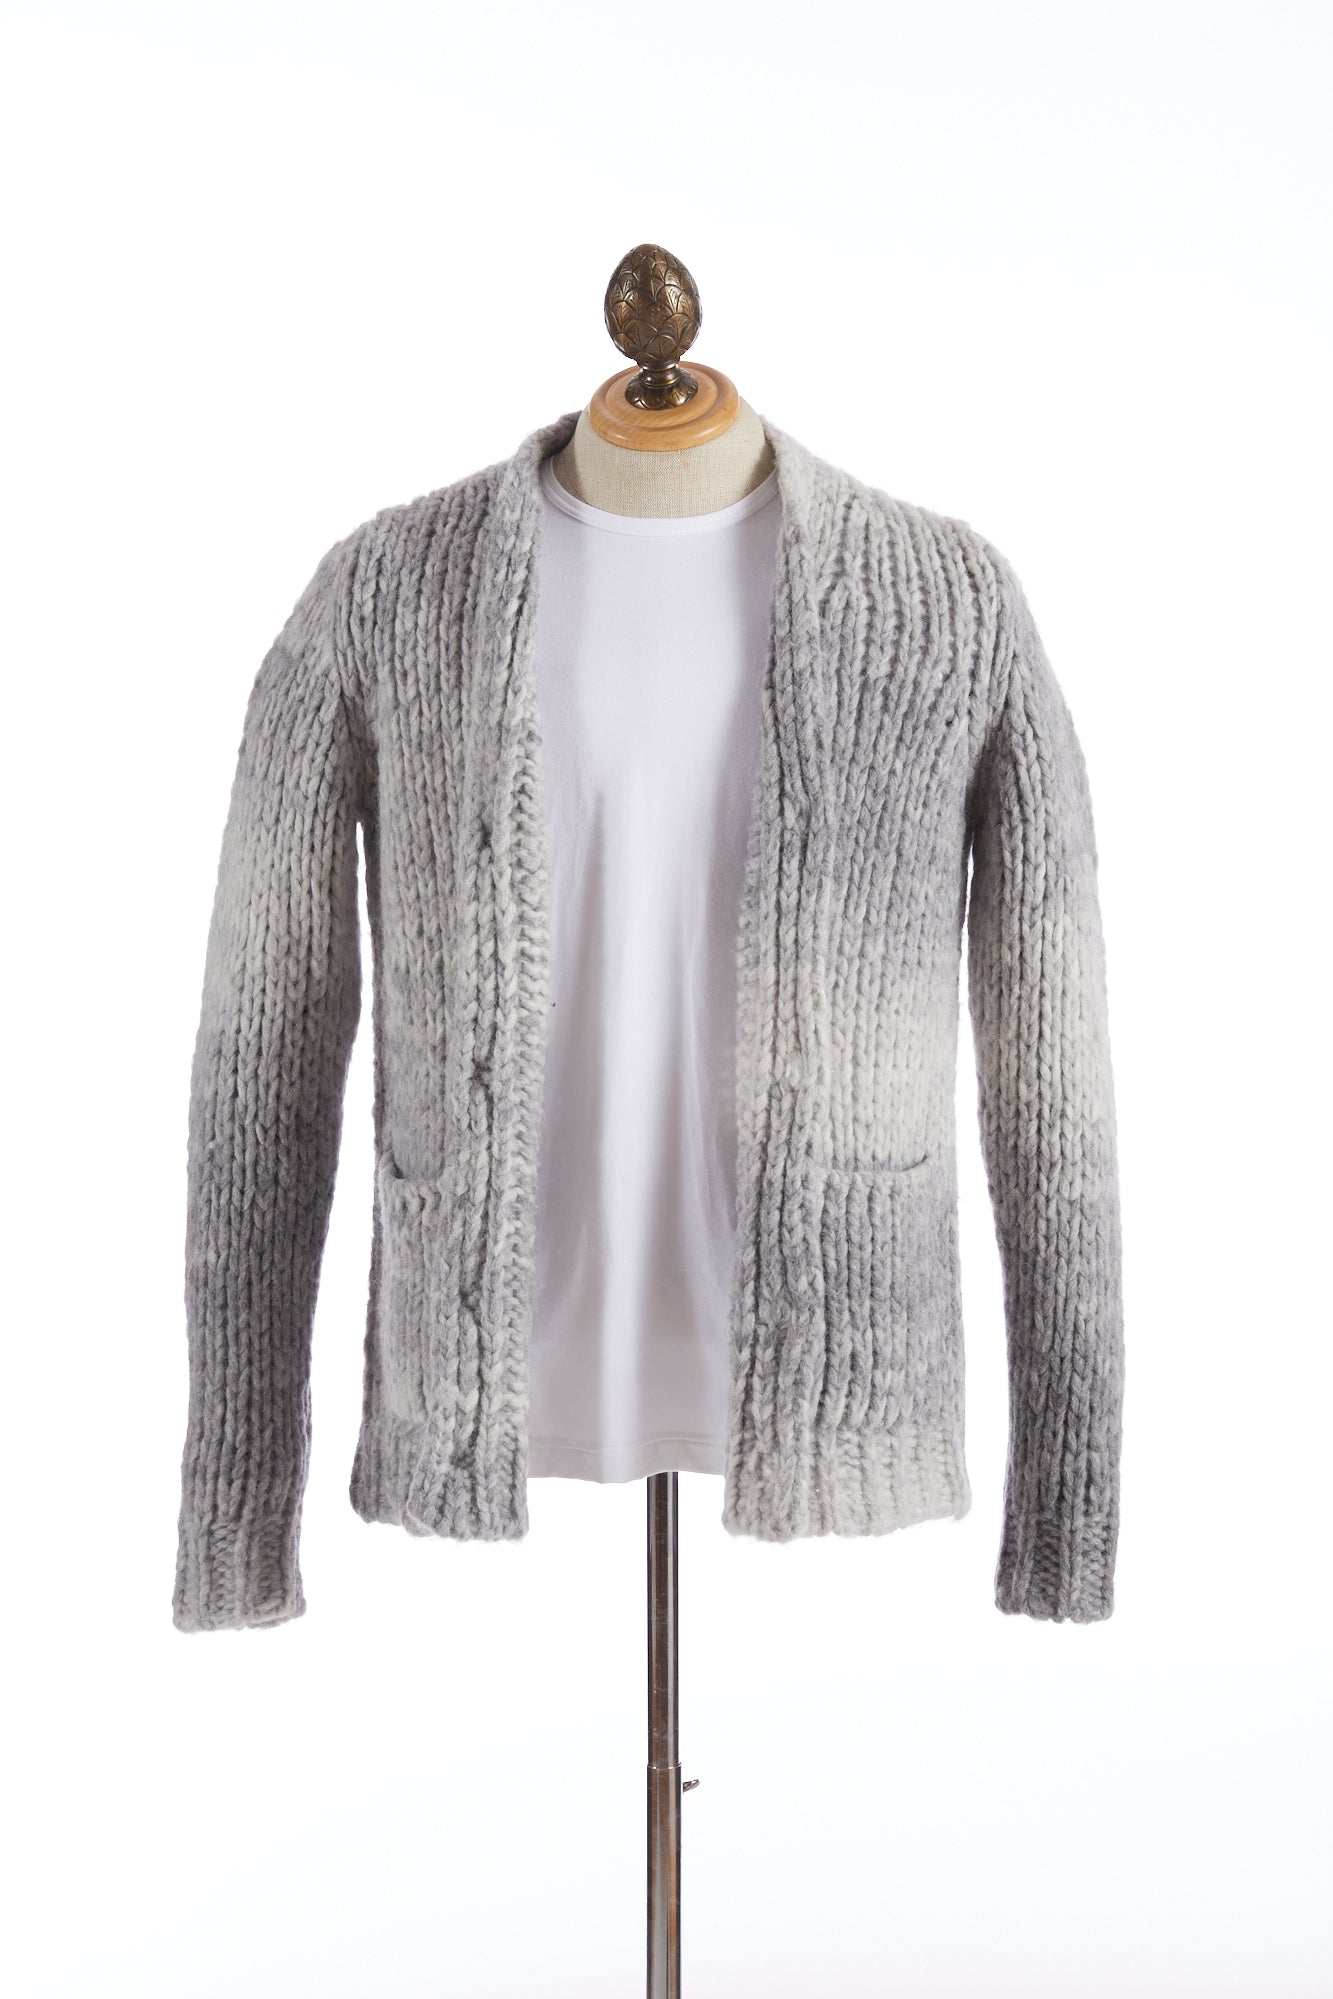 Roberto Collina Grey Dégradé Wool-Alpaca Long Cardigan Sweater